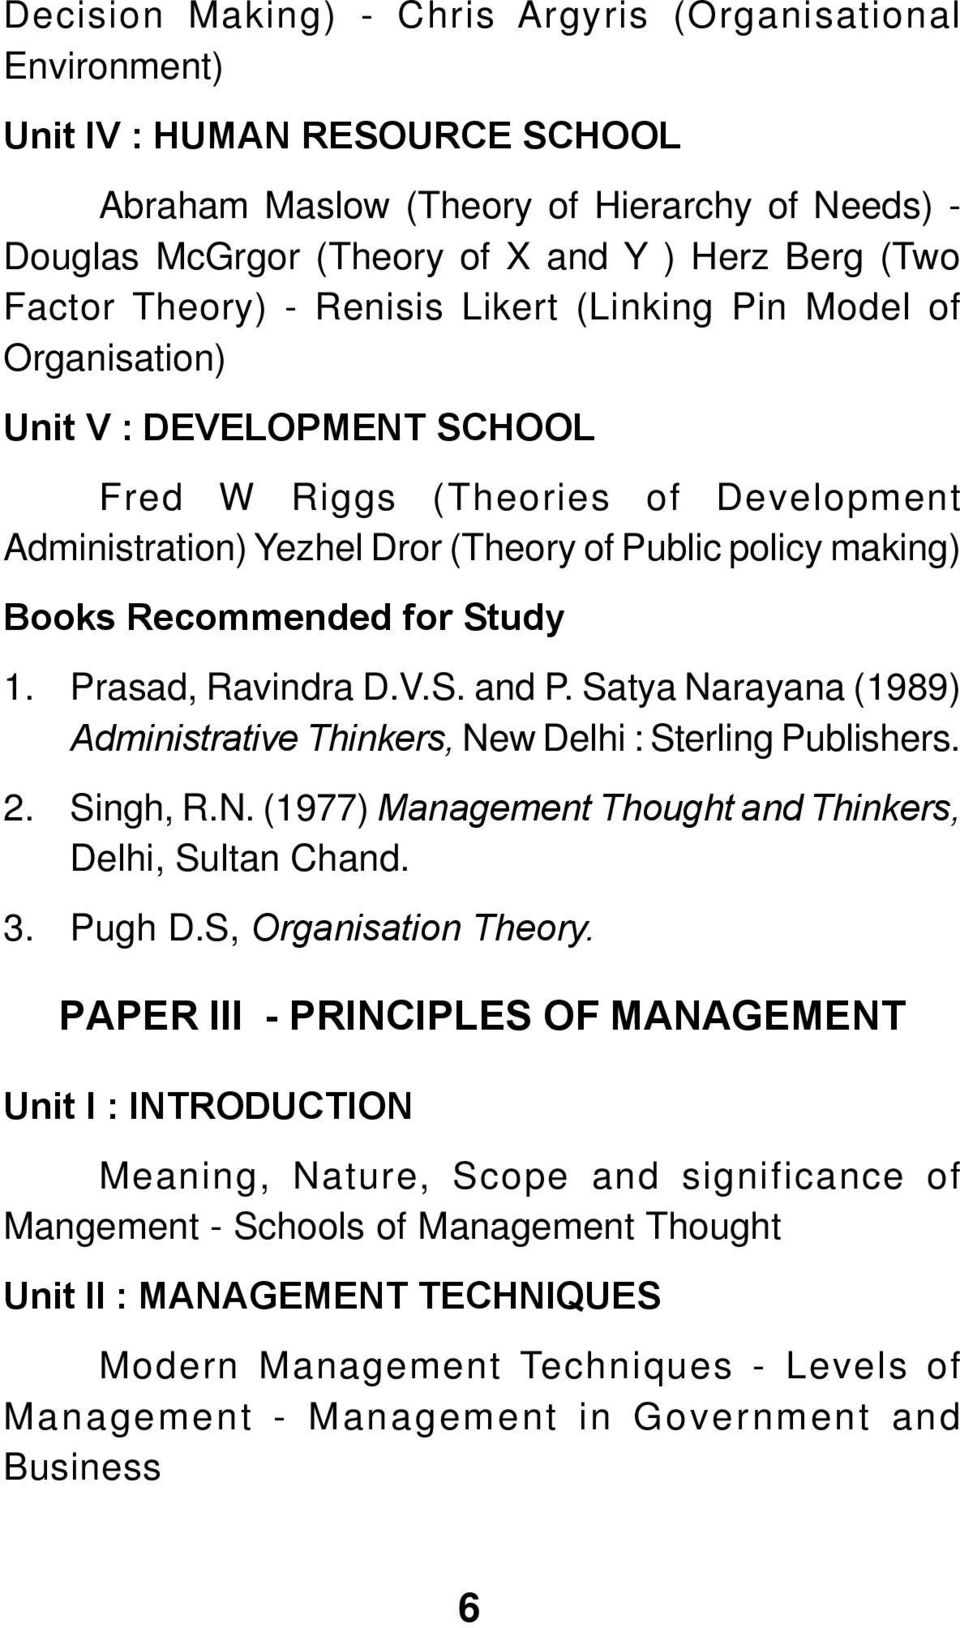 Factor Theory) - Renisis Likert (Linking Pin Model of Organisation) Unit V : DEVELOPMENT SCHOOL Fred W Riggs (Theories of Development Administration) Yezhel Dror (Theory of Public policy making)